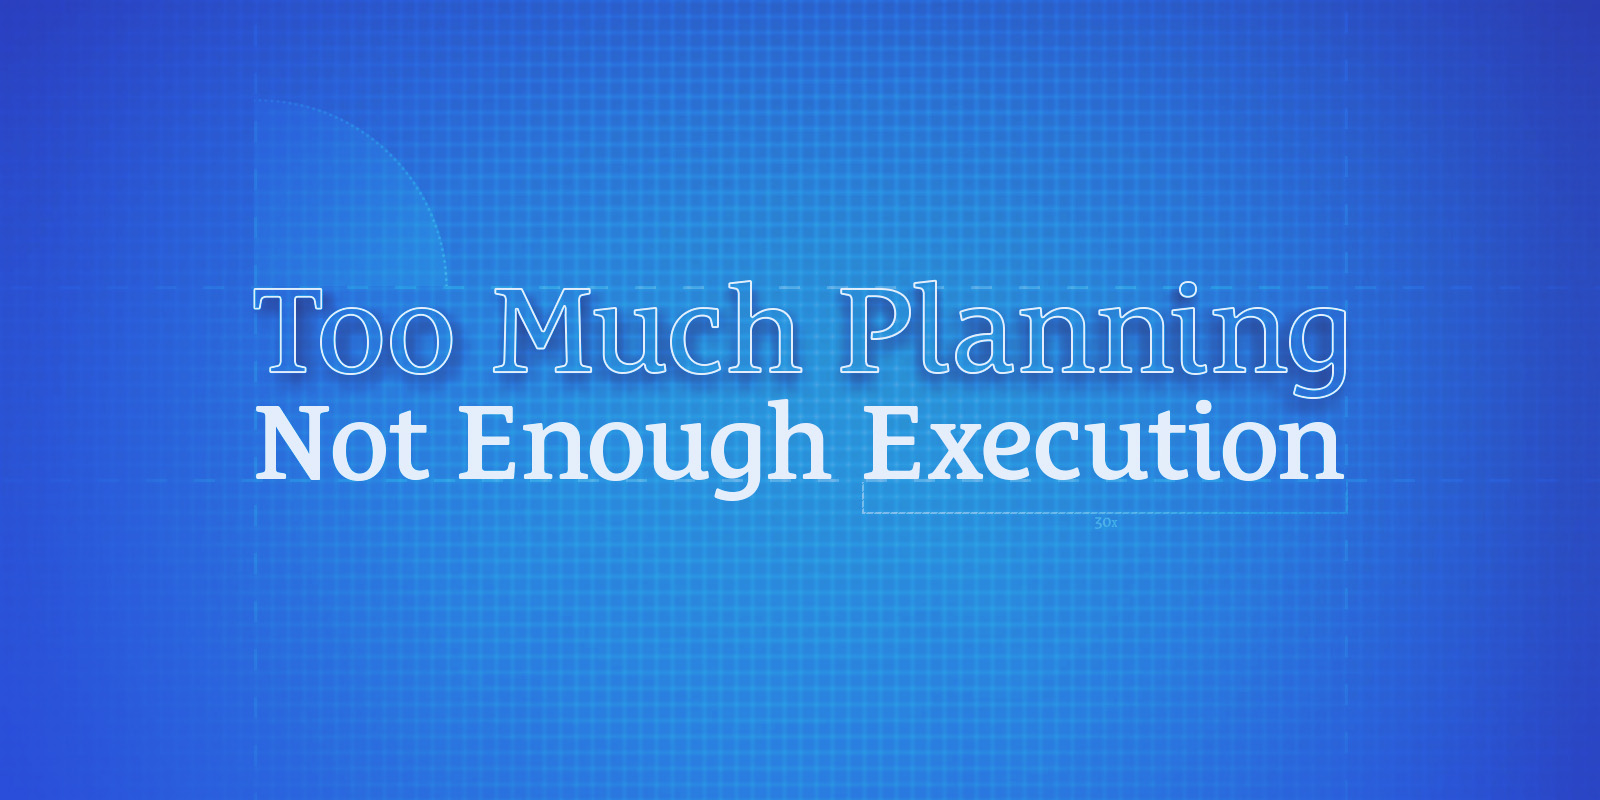 Too Much Planning, Not Enough Execution